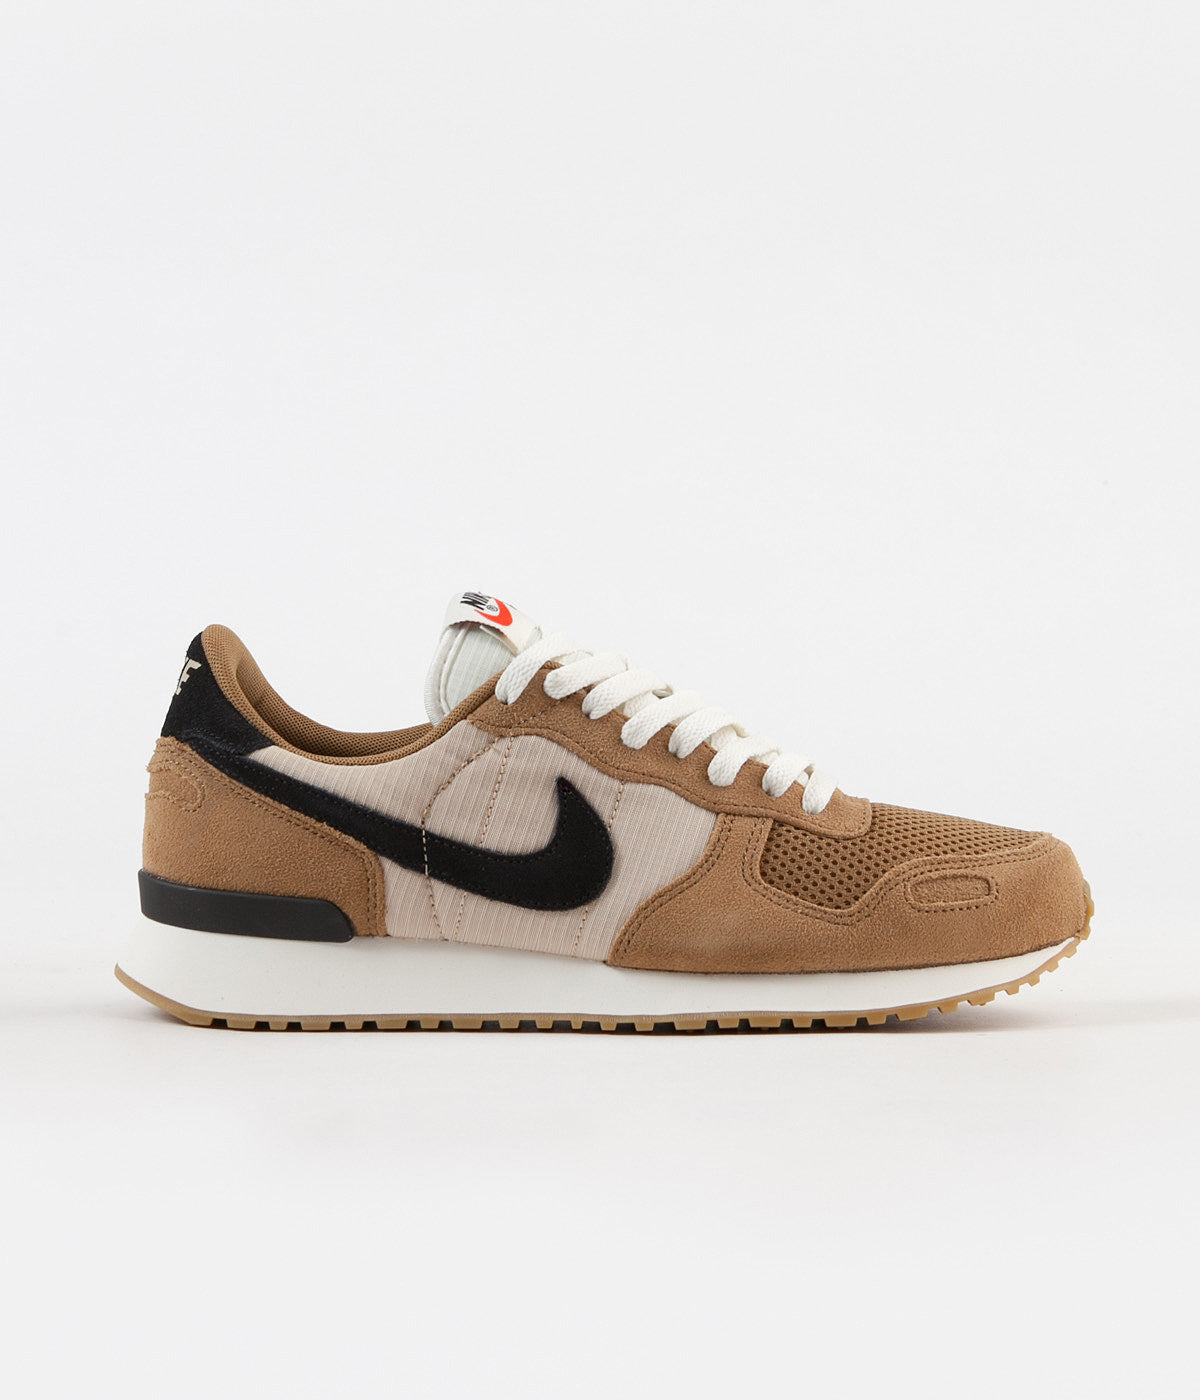 Nike Air Vortex Shoes - Golden Beige / Black - Desert Ore - Sail ...